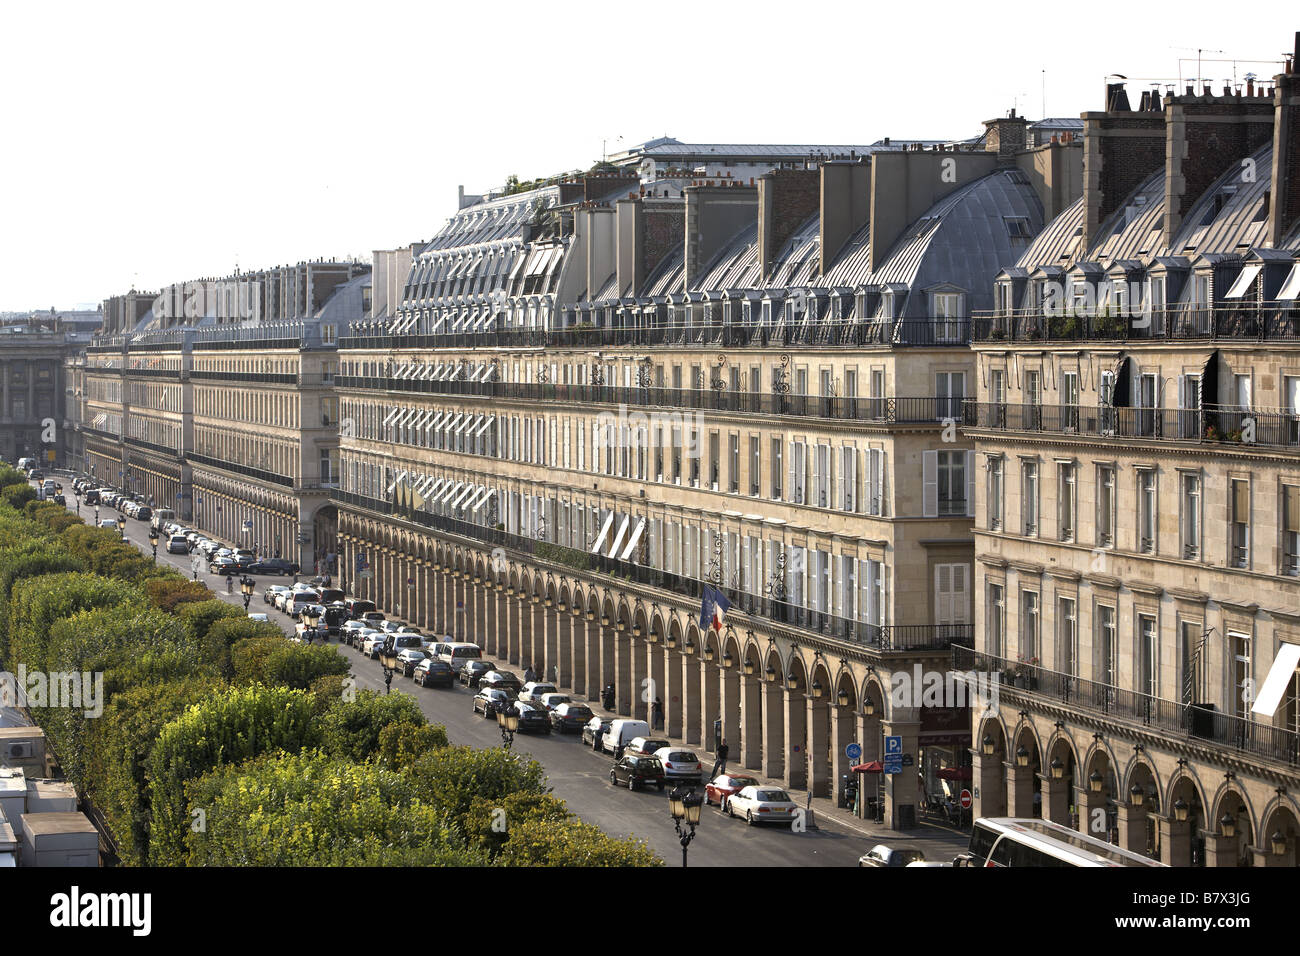 aerial view rue de rivoli paris france stock photo royalty free image 22086584 alamy. Black Bedroom Furniture Sets. Home Design Ideas